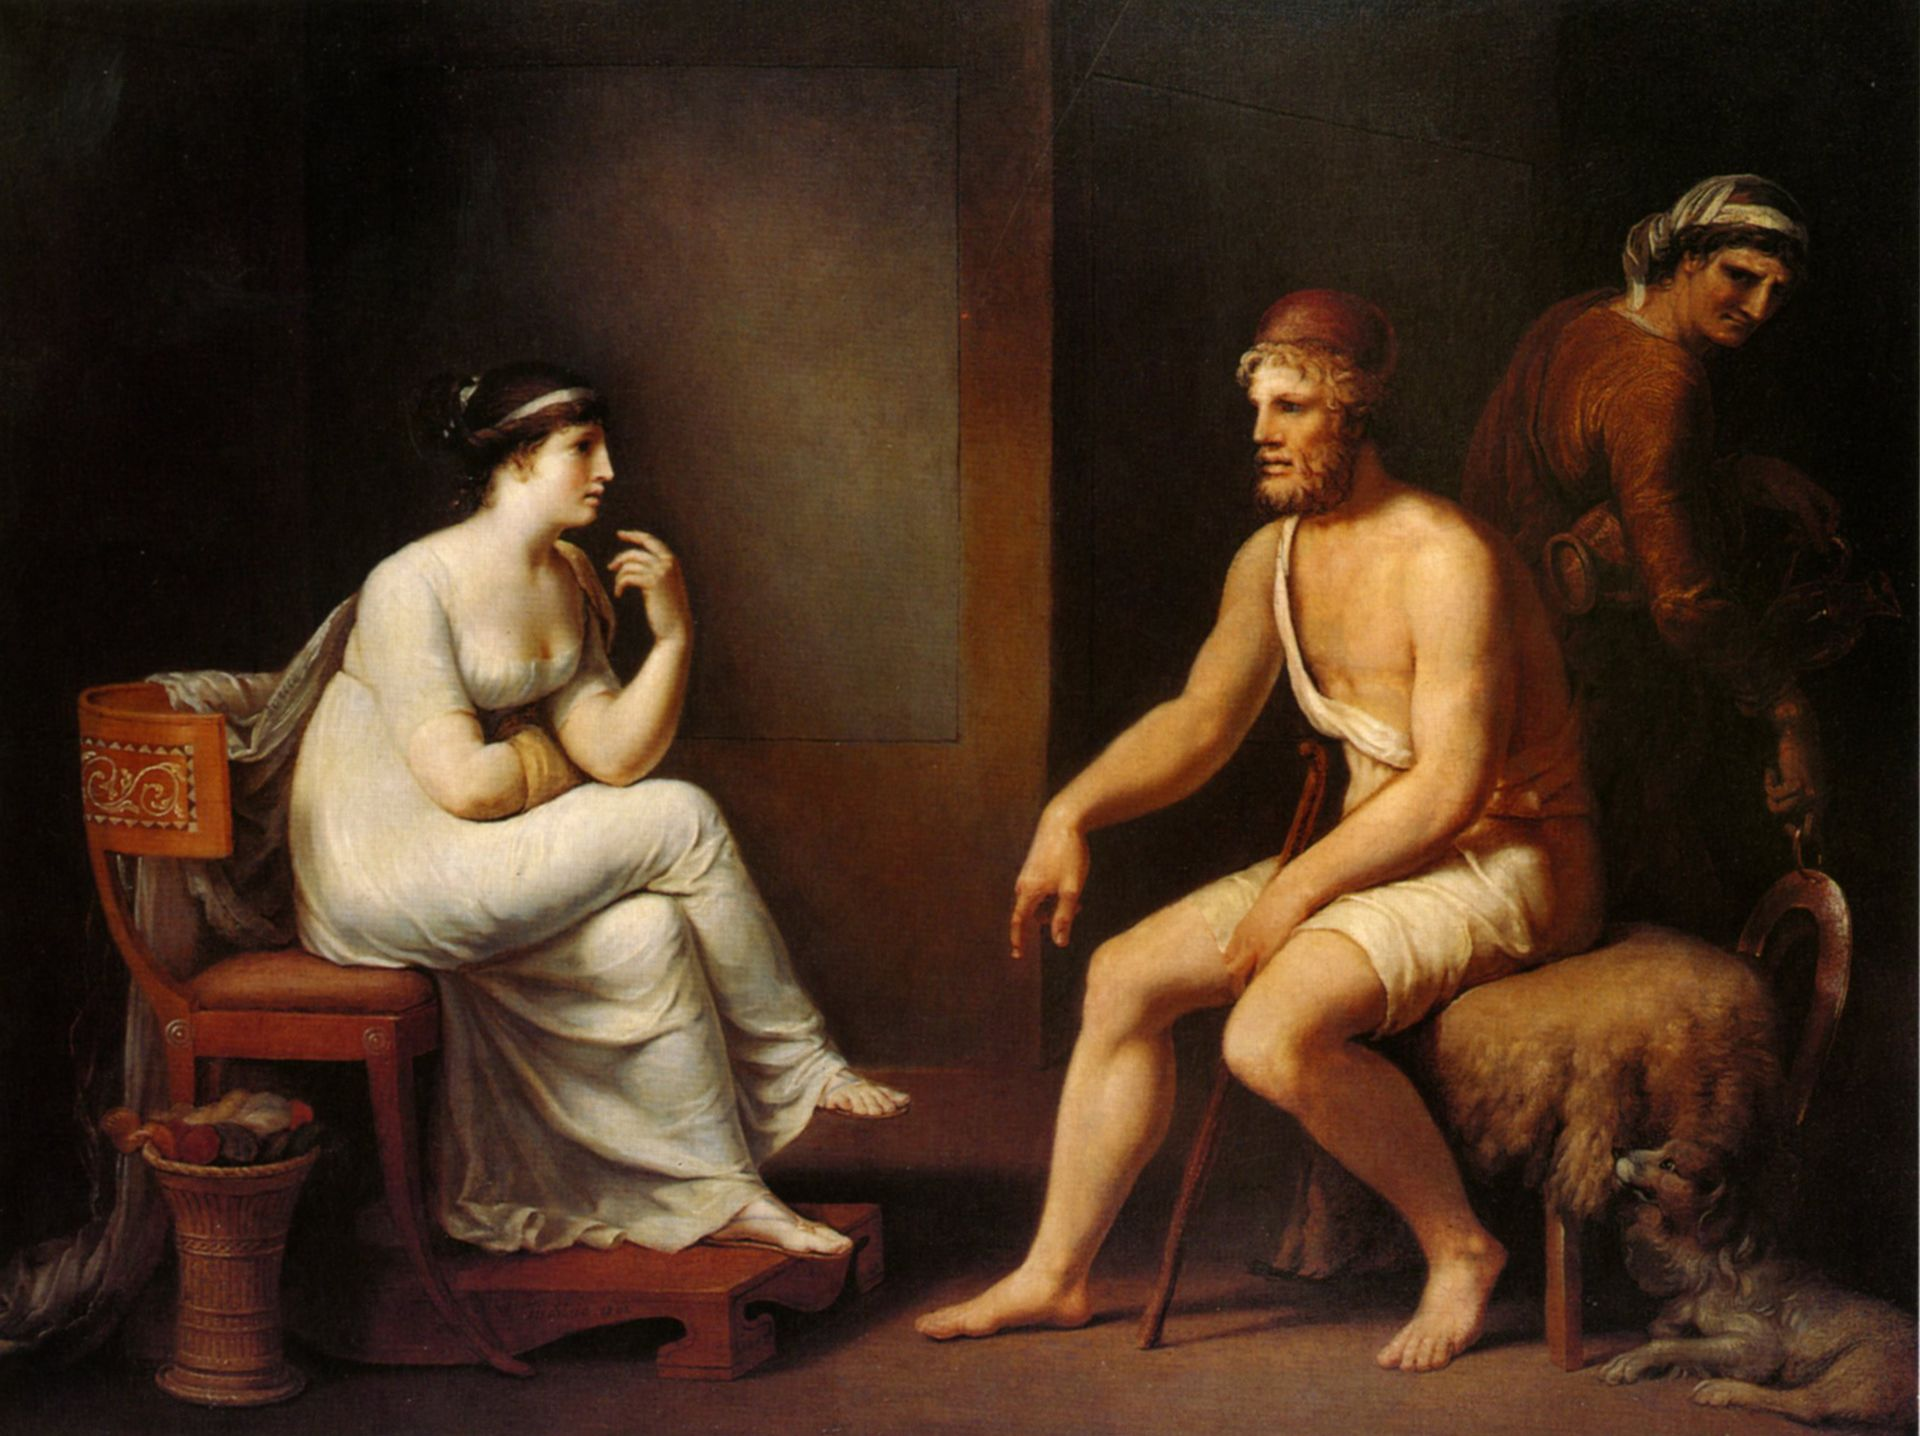 Odysseus and Penelope (1802) by Tischbein